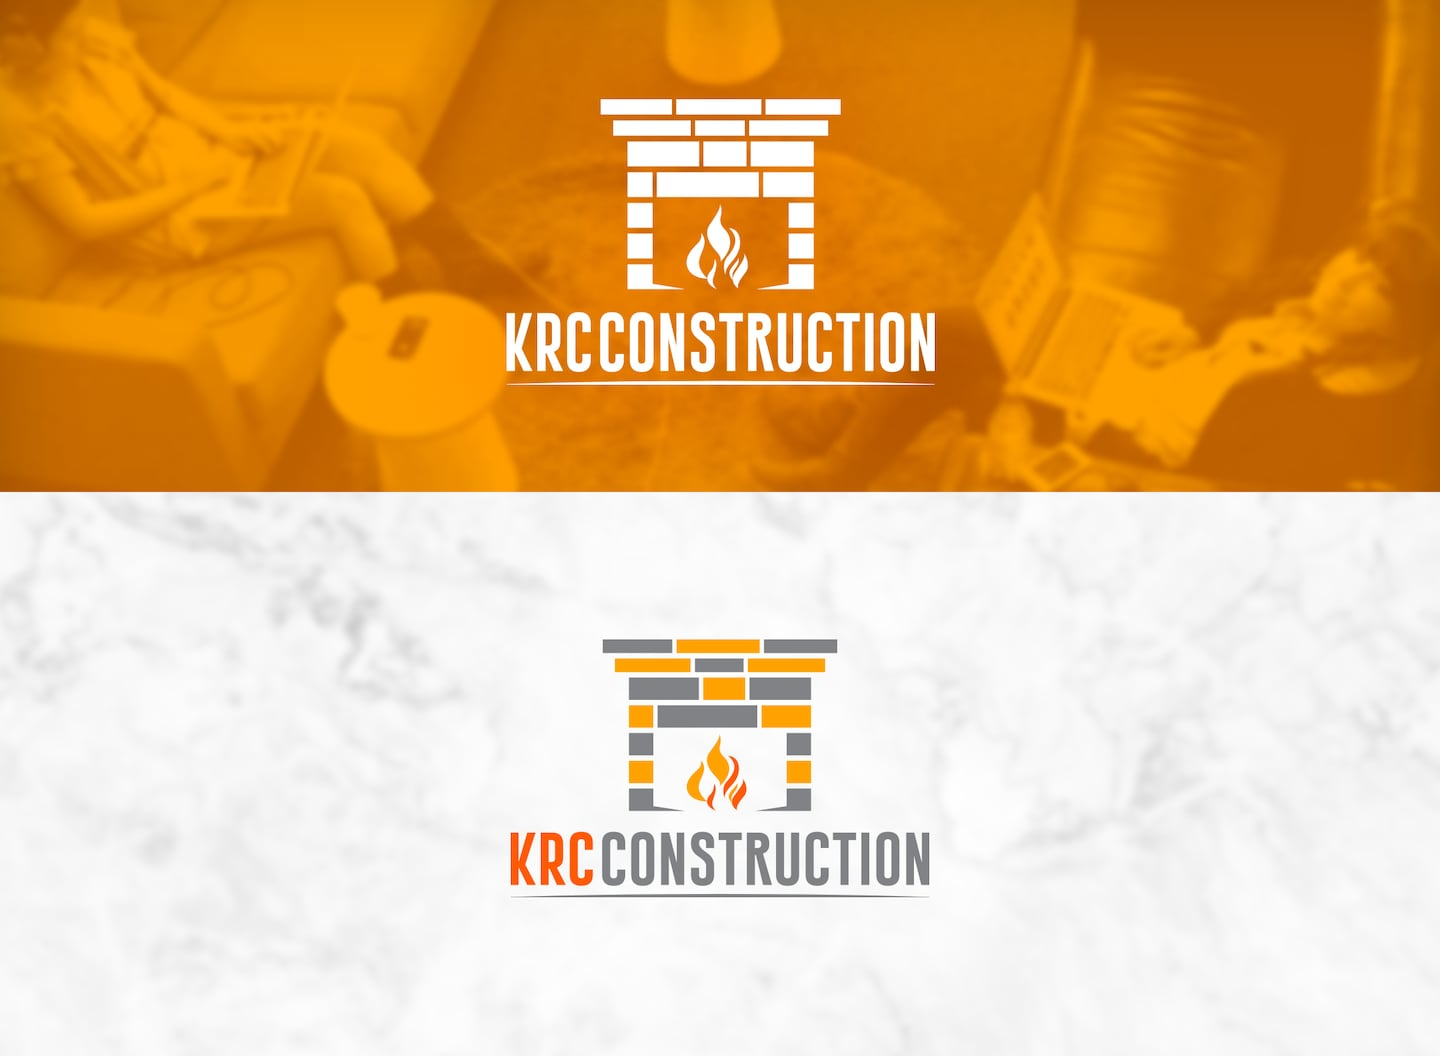 KRCConstruction